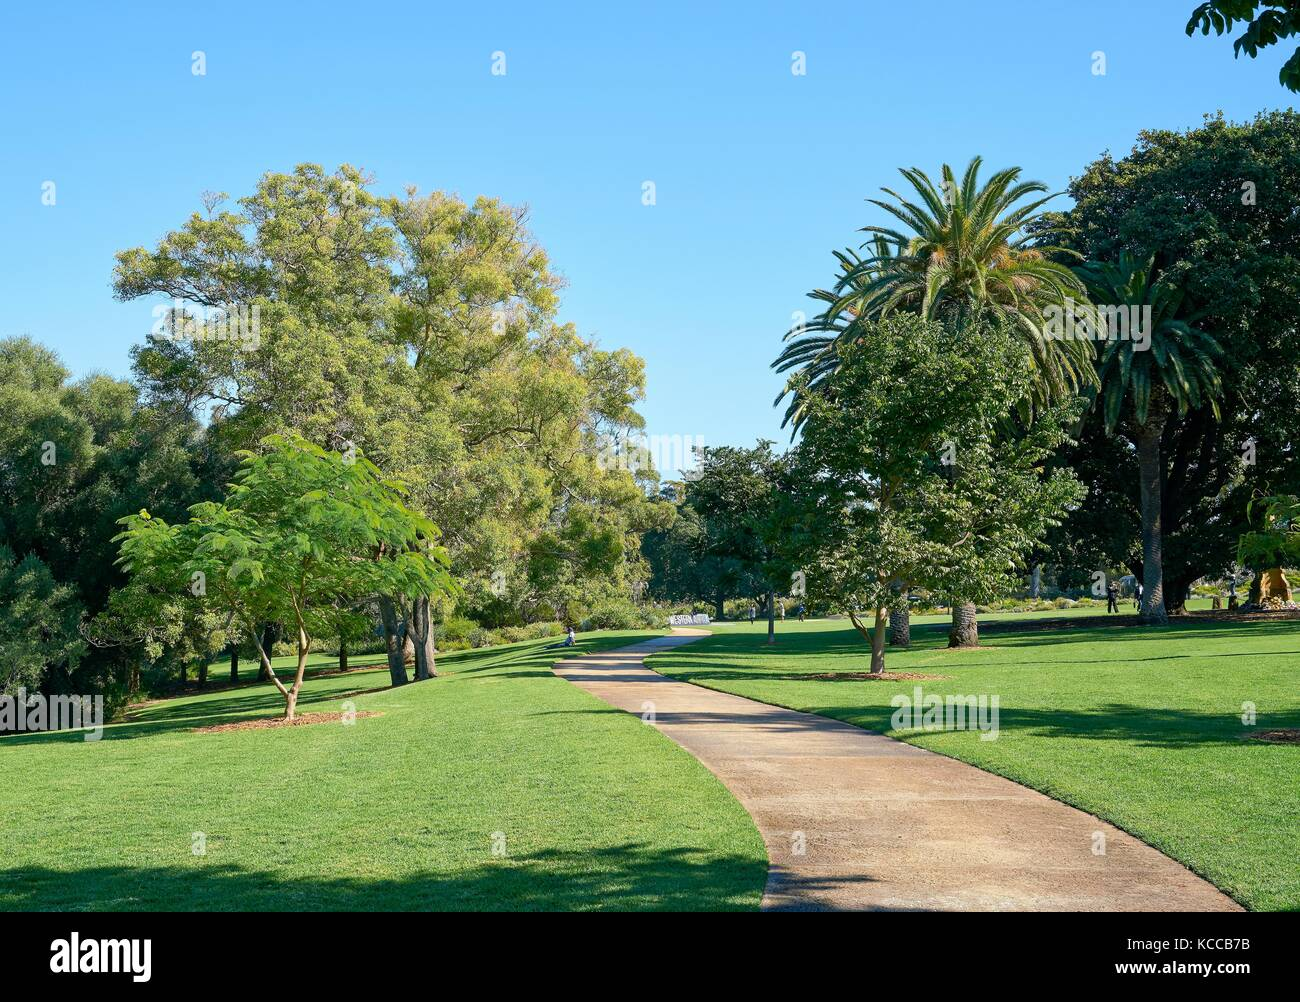 Australian Parks and Gardens Perth Stock Photo: 162541439